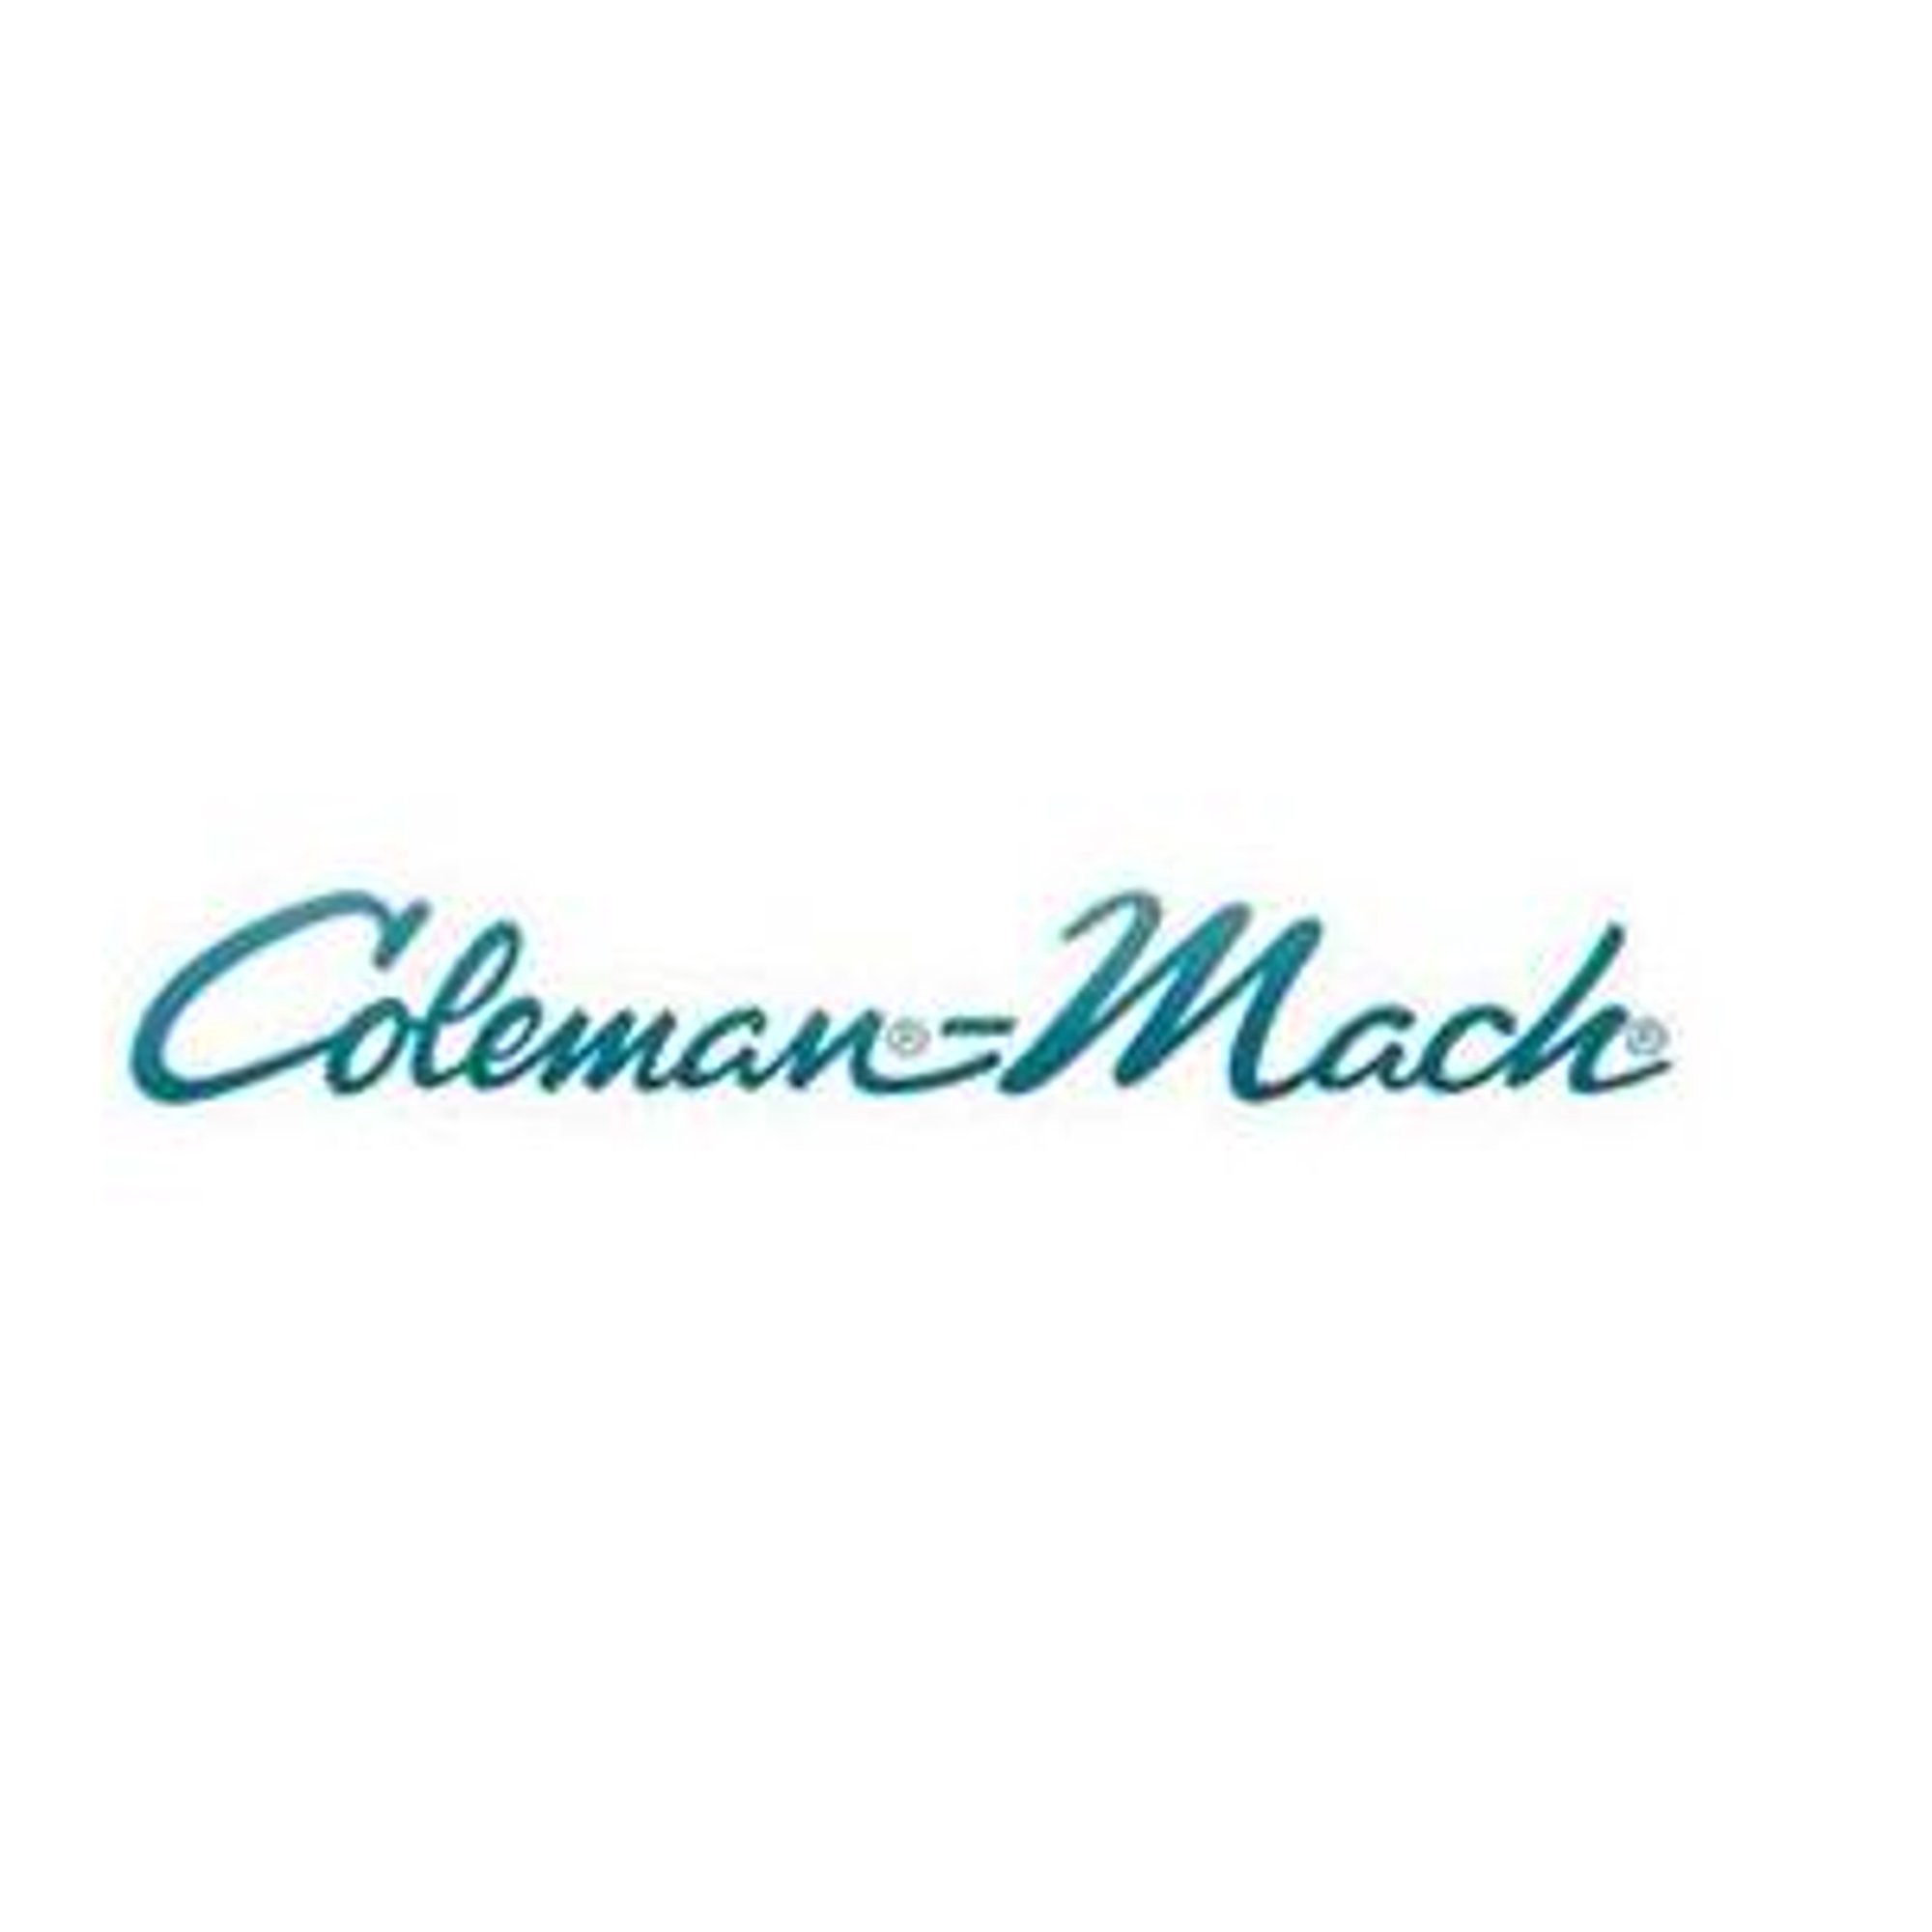 Coleman Mach 1499 5661 Air Conditioner Capacitor Run Capacitor Replacement For Coleman Models 67 7333 Walmart Canada